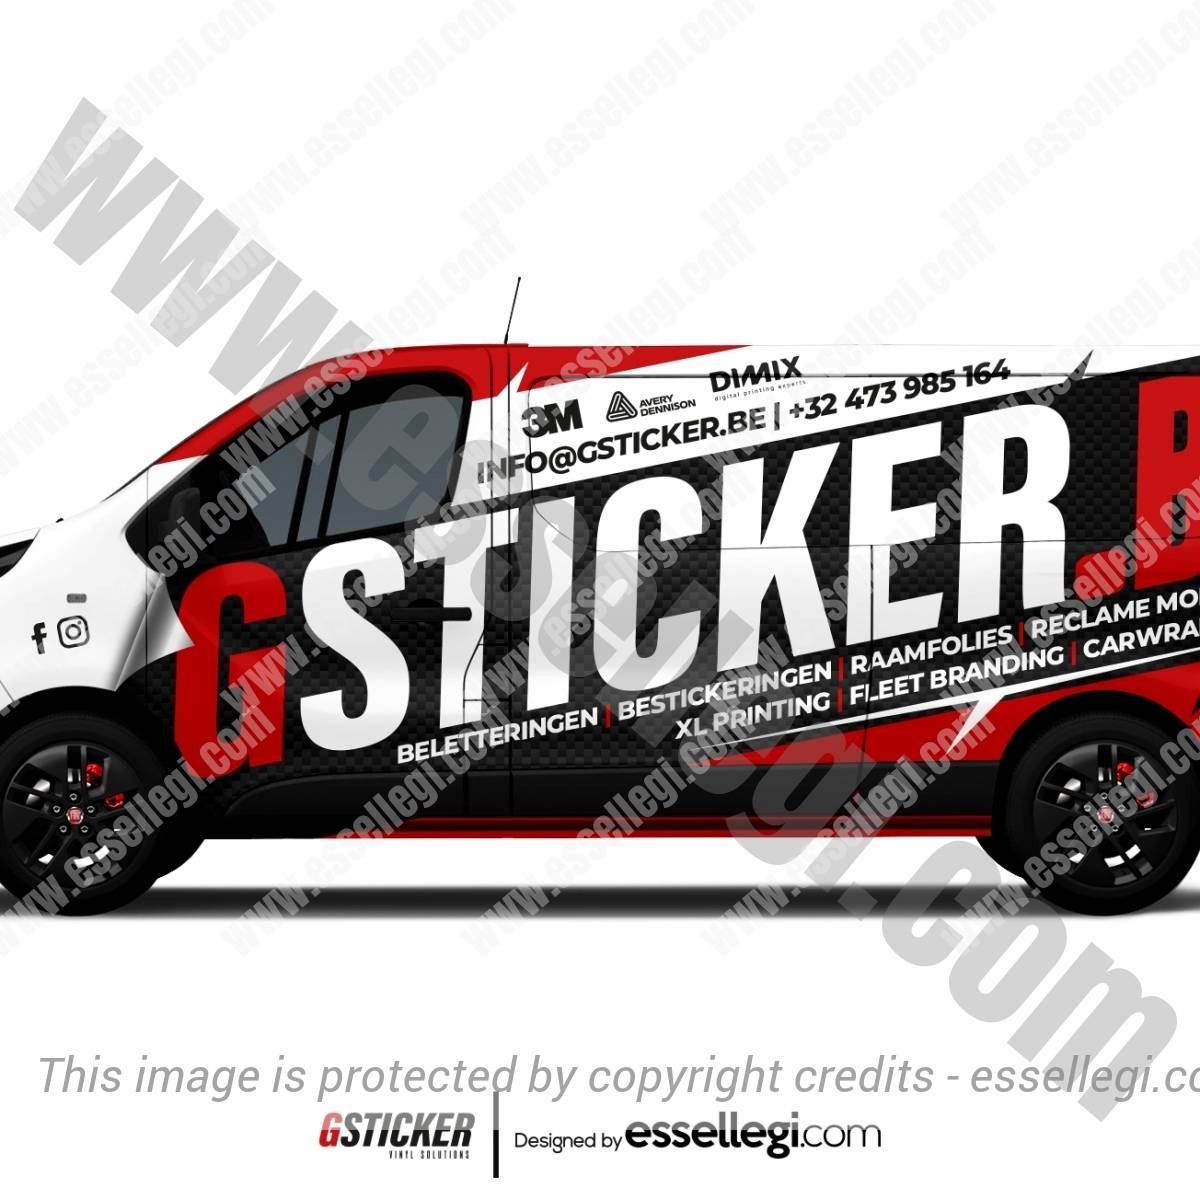 GSTICKER | VAN WRAP DESIGN 🇧🇪